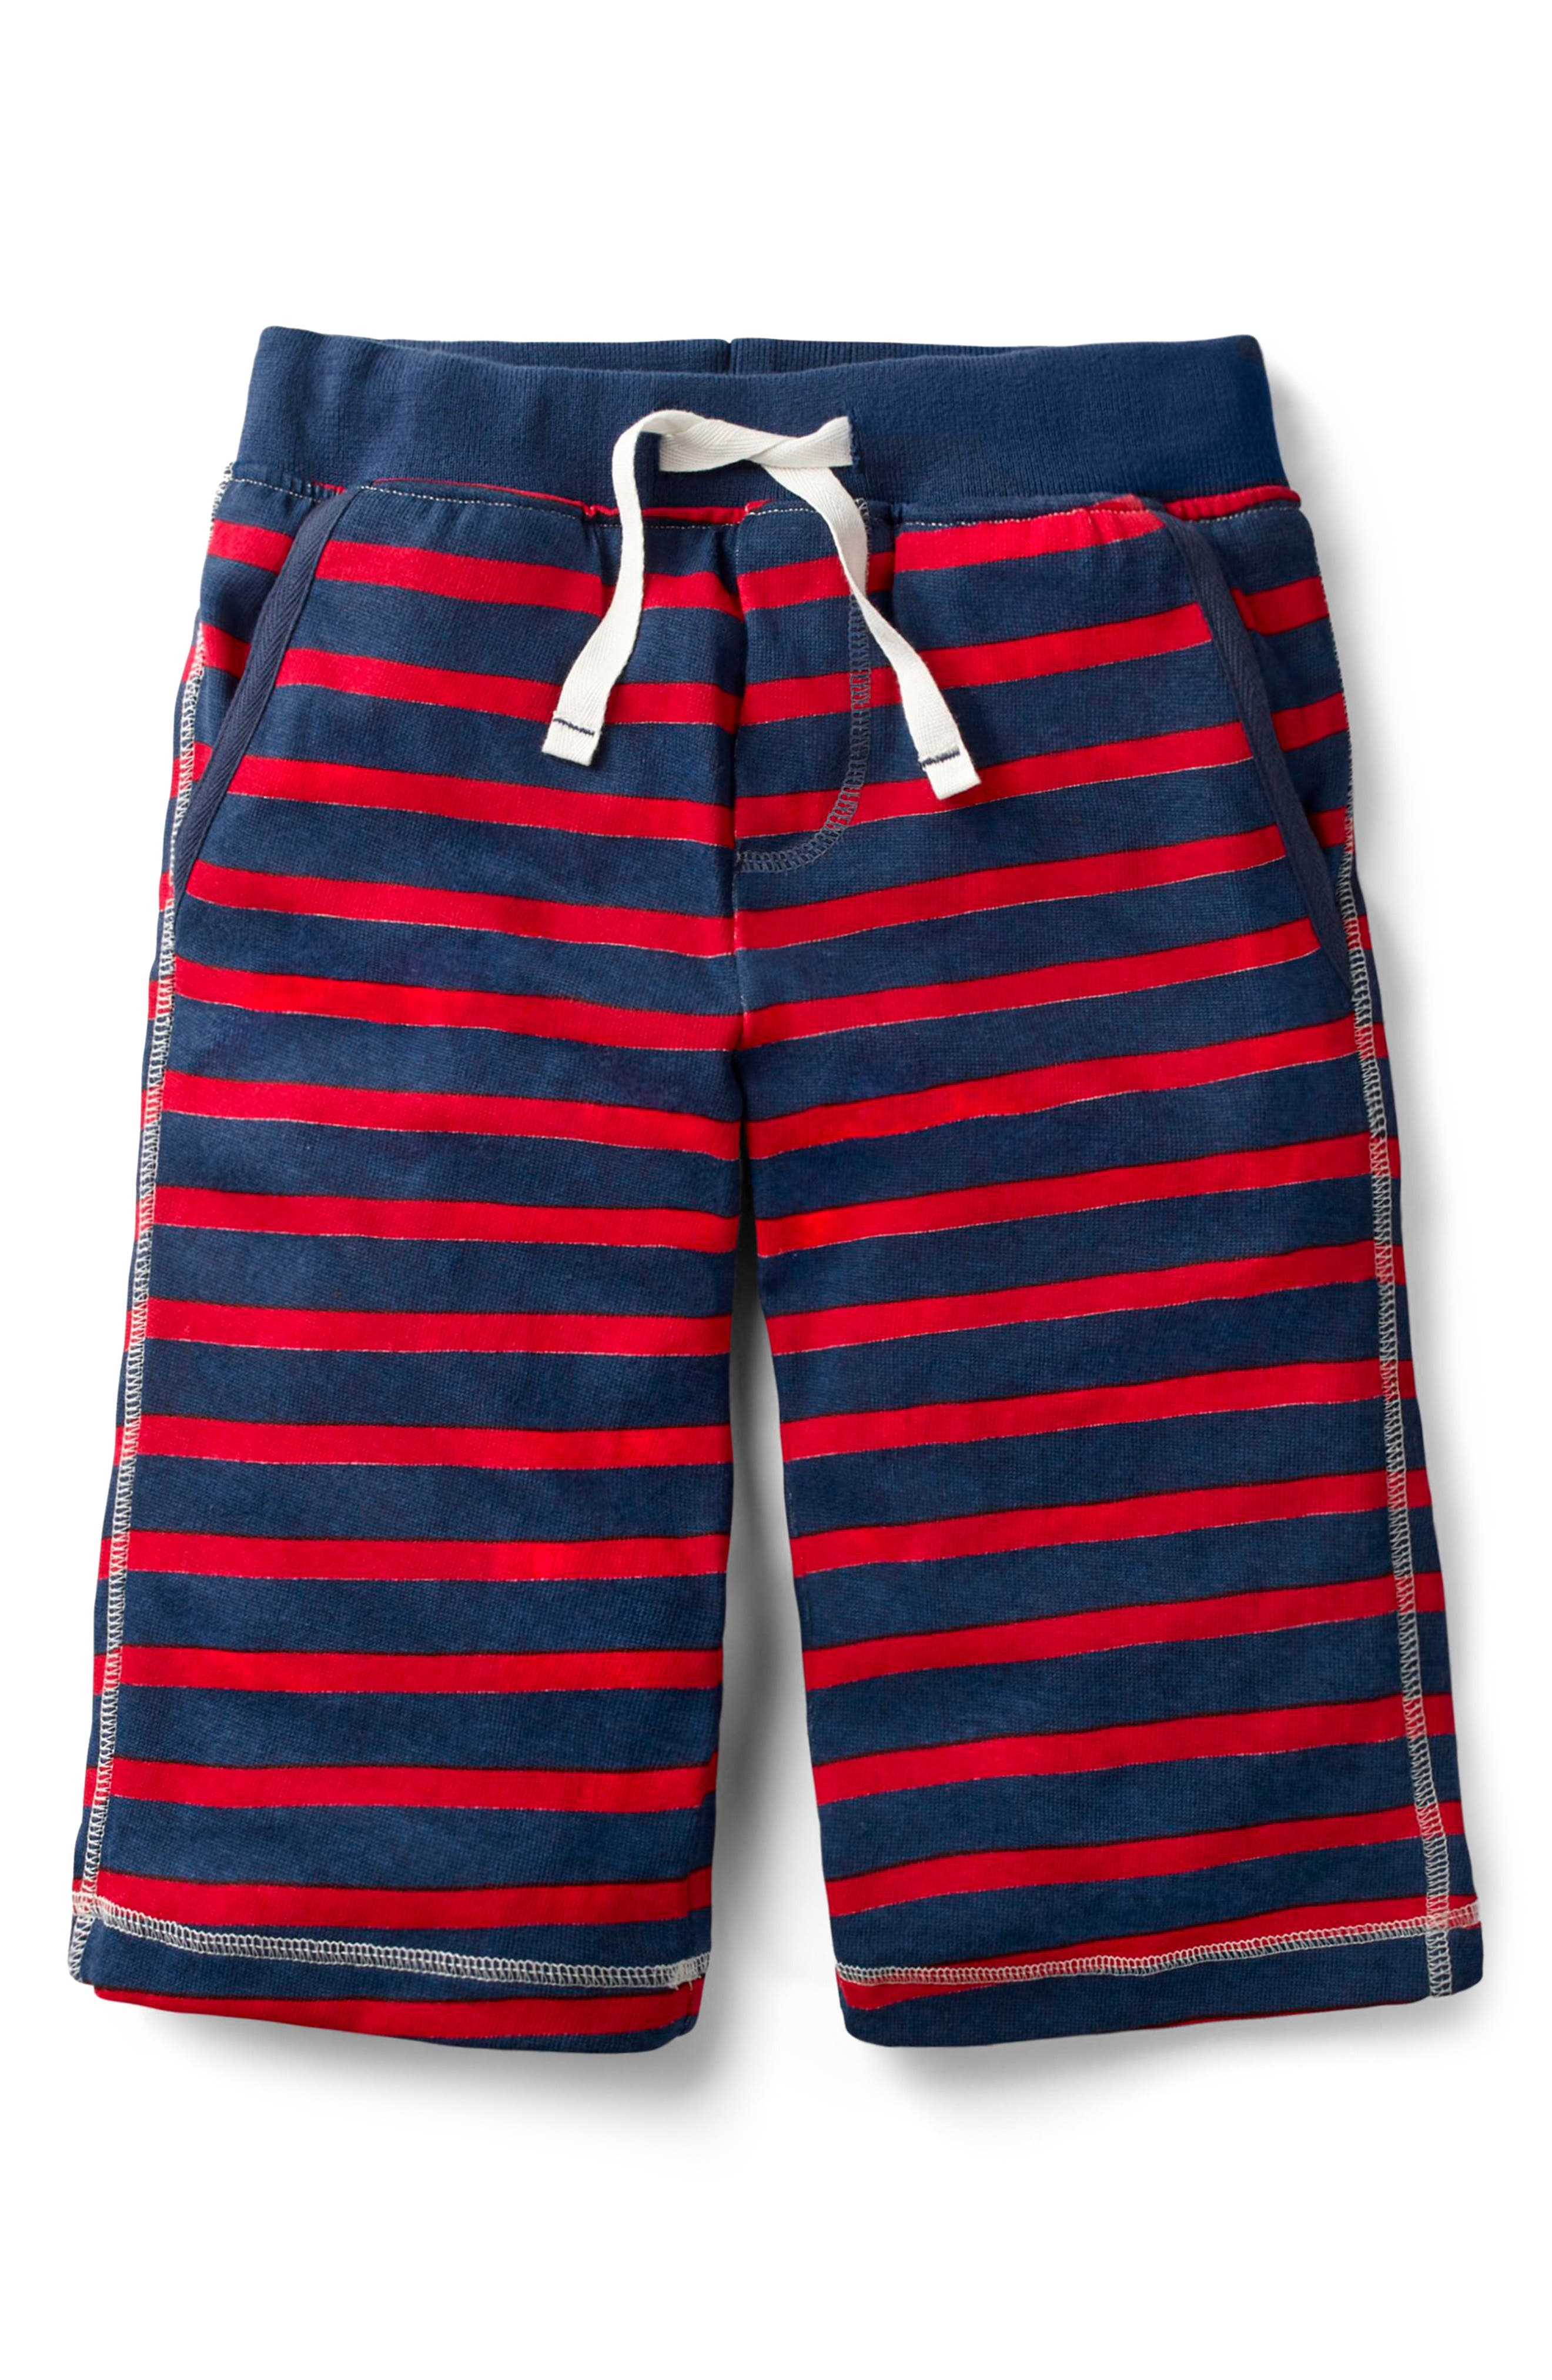 Jersey Baggies Shorts,                         Main,                         color, Beacon Blue/ Salsa Red